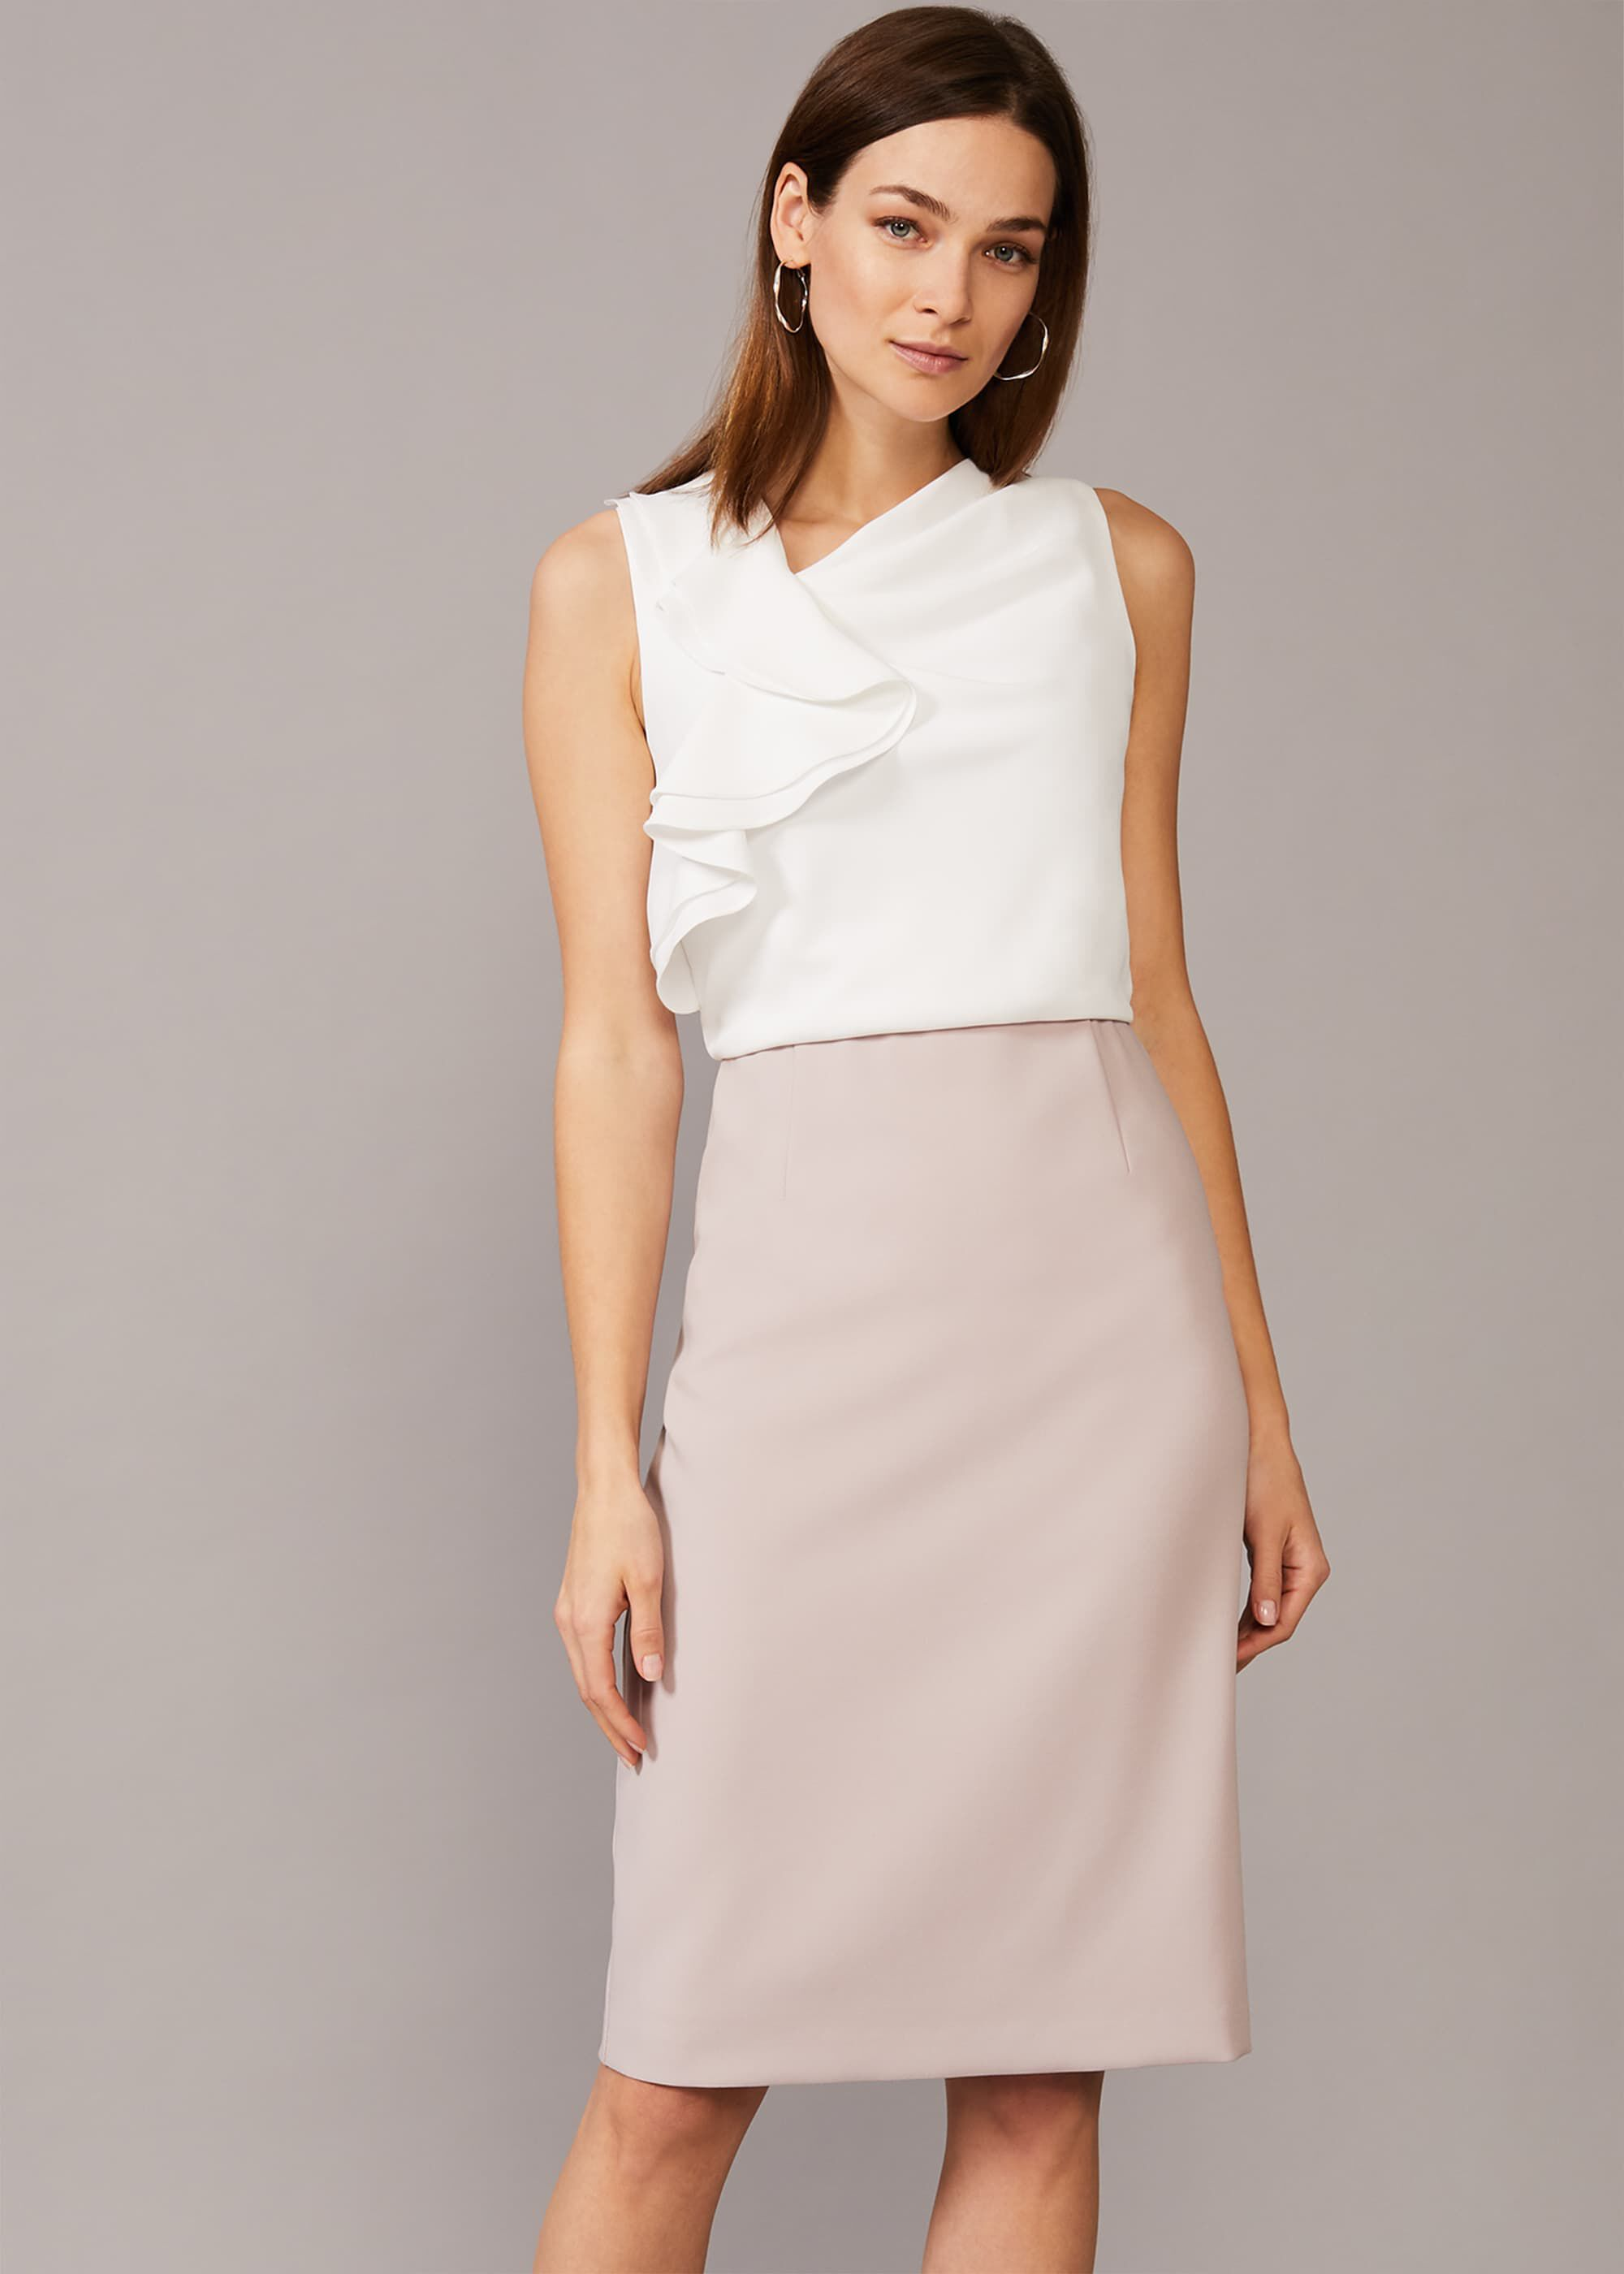 Phase Eight Maeve Frill Fitted Dress, Cream, Fitted, Occasion Dress